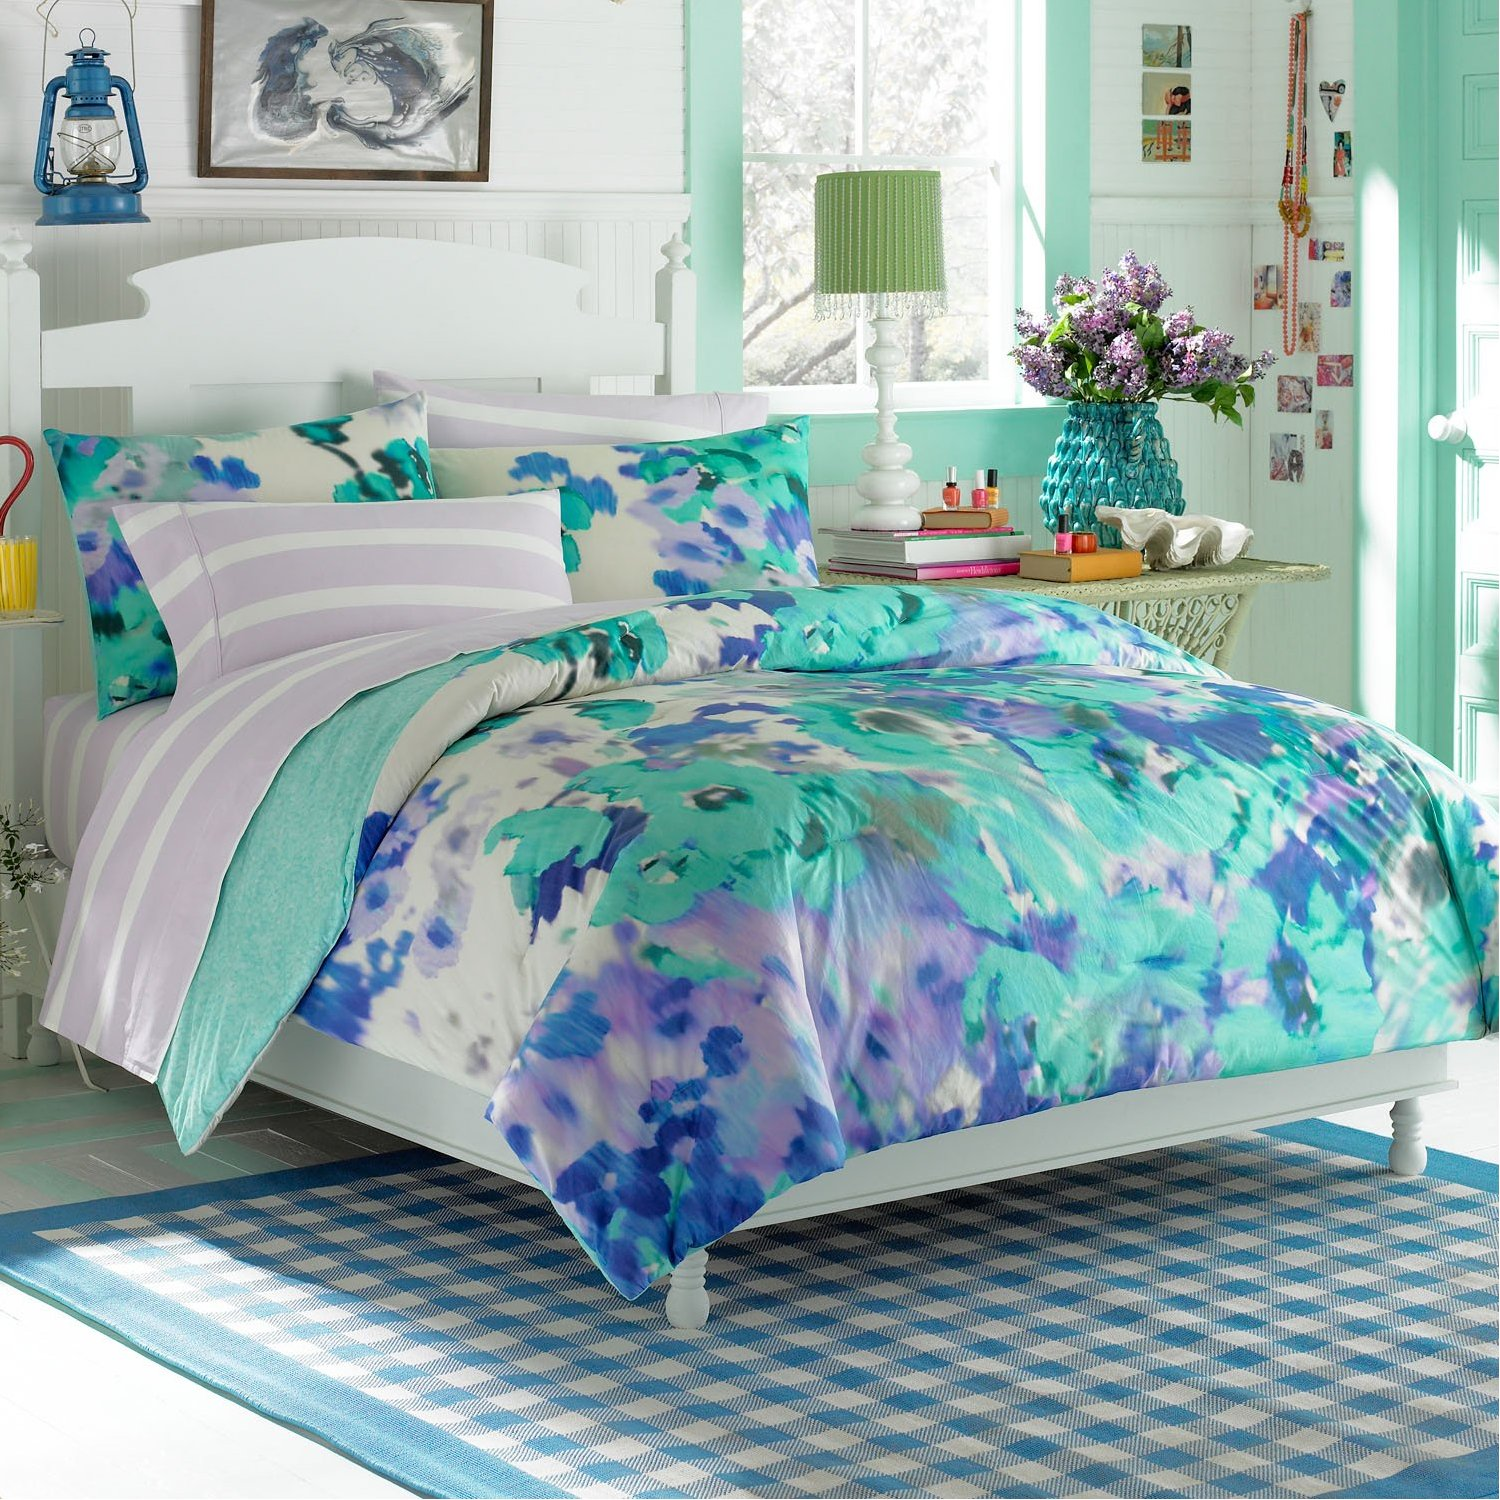 Kmart Pools | Twin Bedding | Kmart Bed Sets